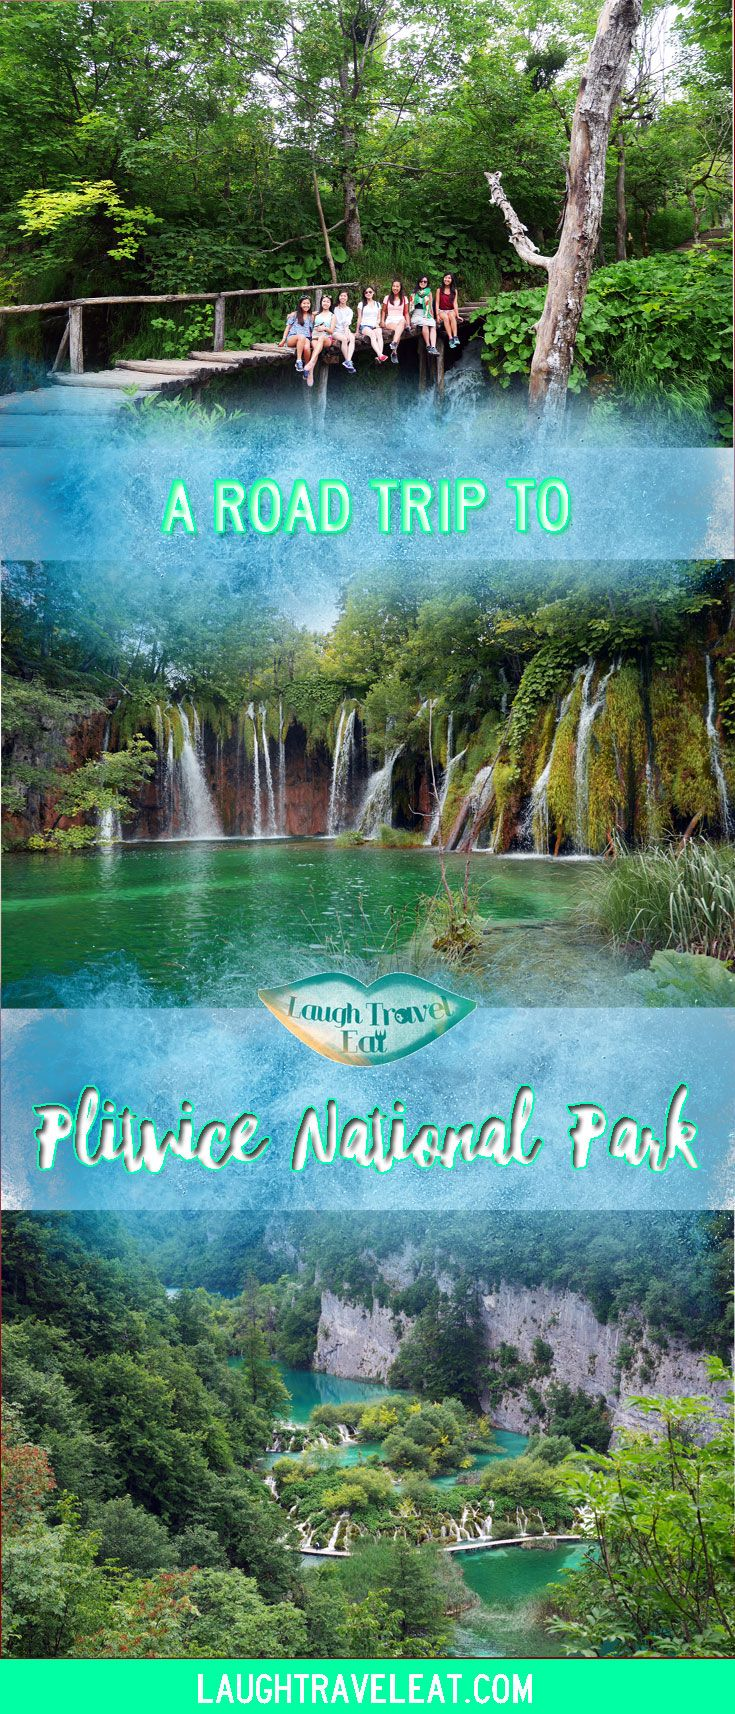 Plitvice National Park in Croatia is one of the most famous natural wonder of the world. Here's how you can make the most out of a half day road trip there.